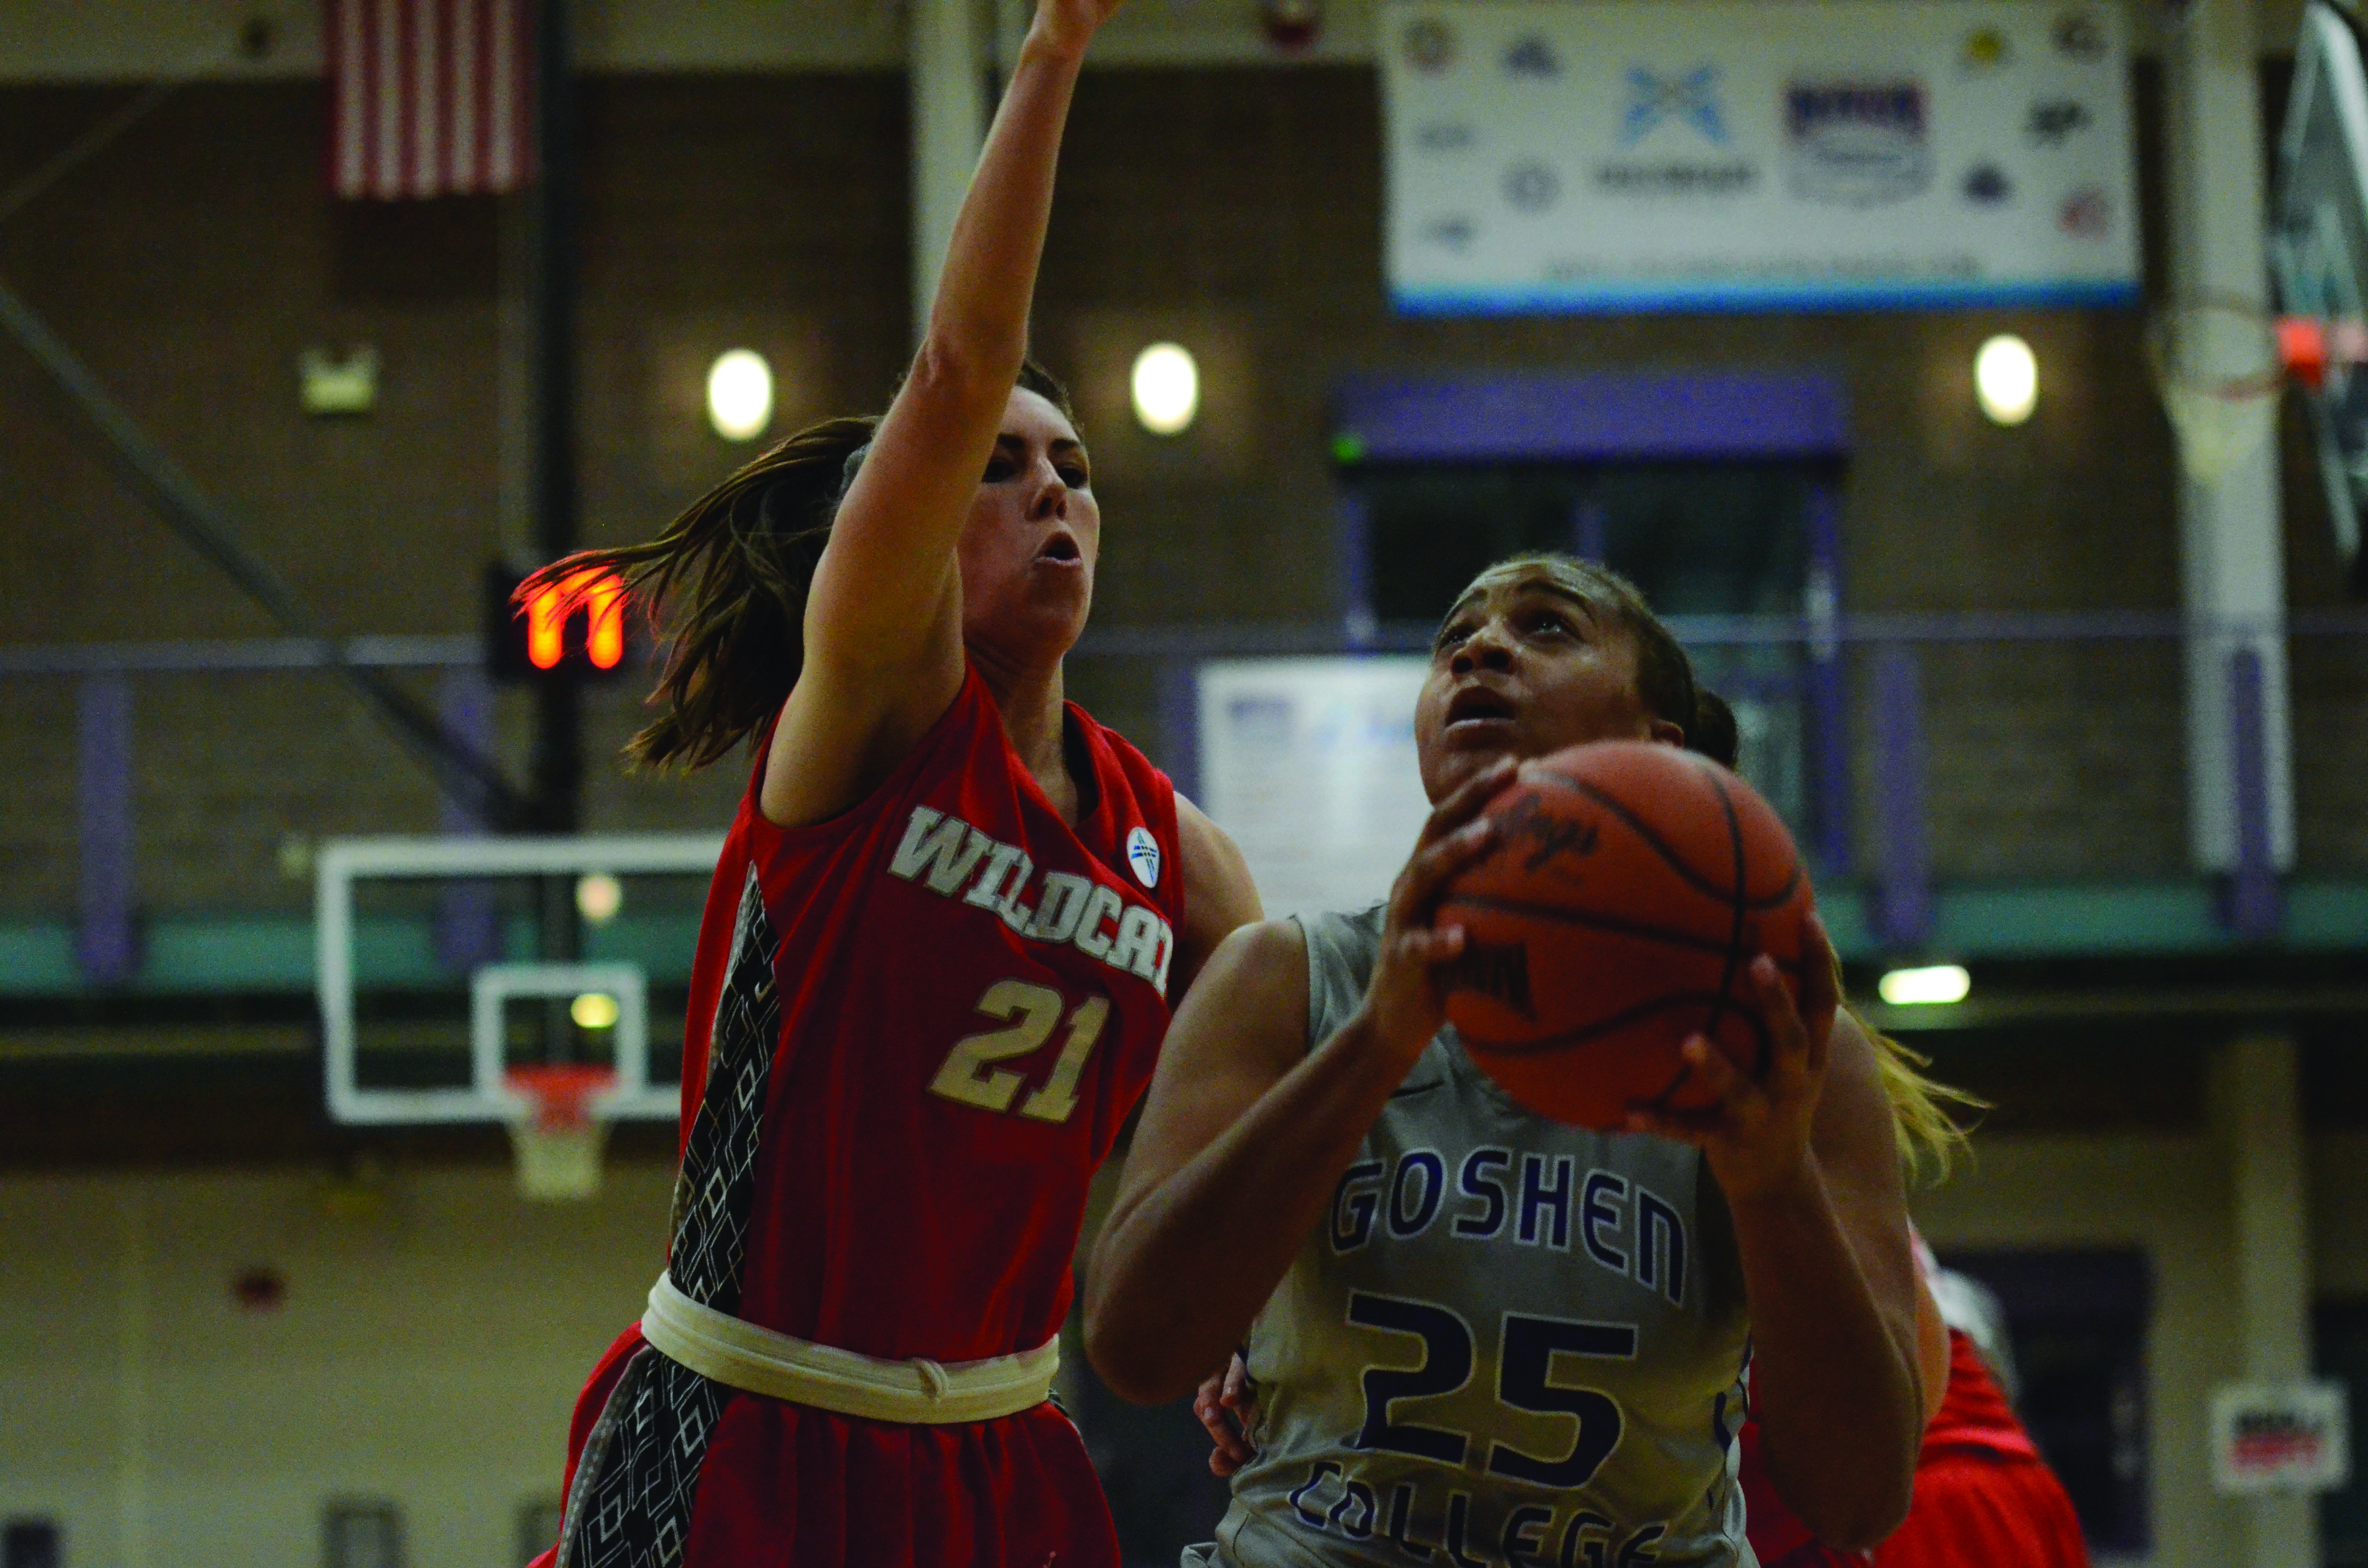 Keshia Ward fends off a defender while preparing for a shot